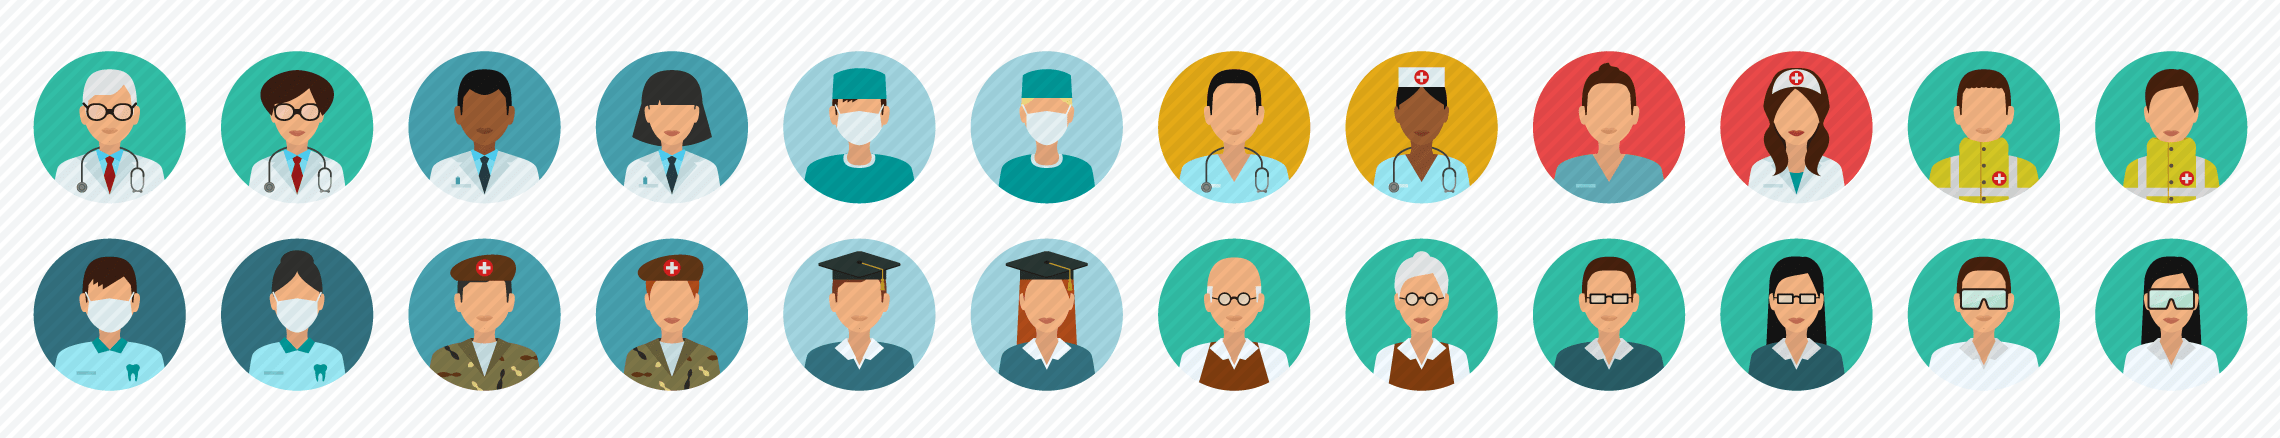 People_Medical_eduction_Science flat icons